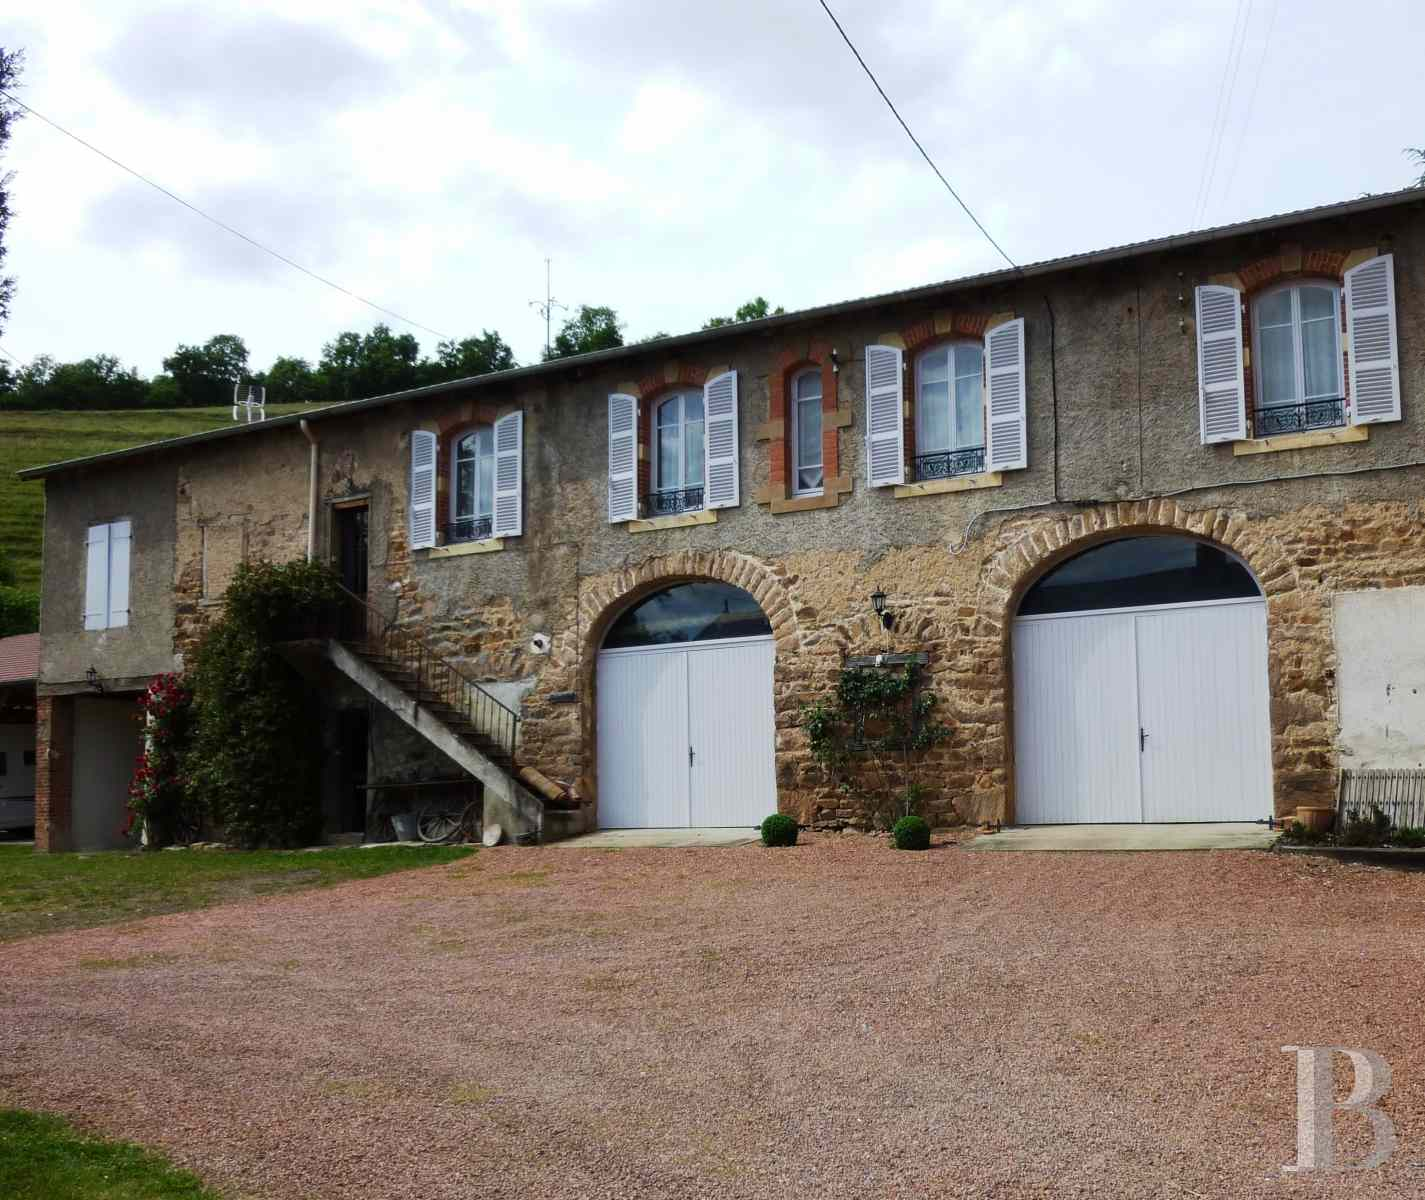 chateaux for sale France rhones alps upper beaujolais - 12 zoom